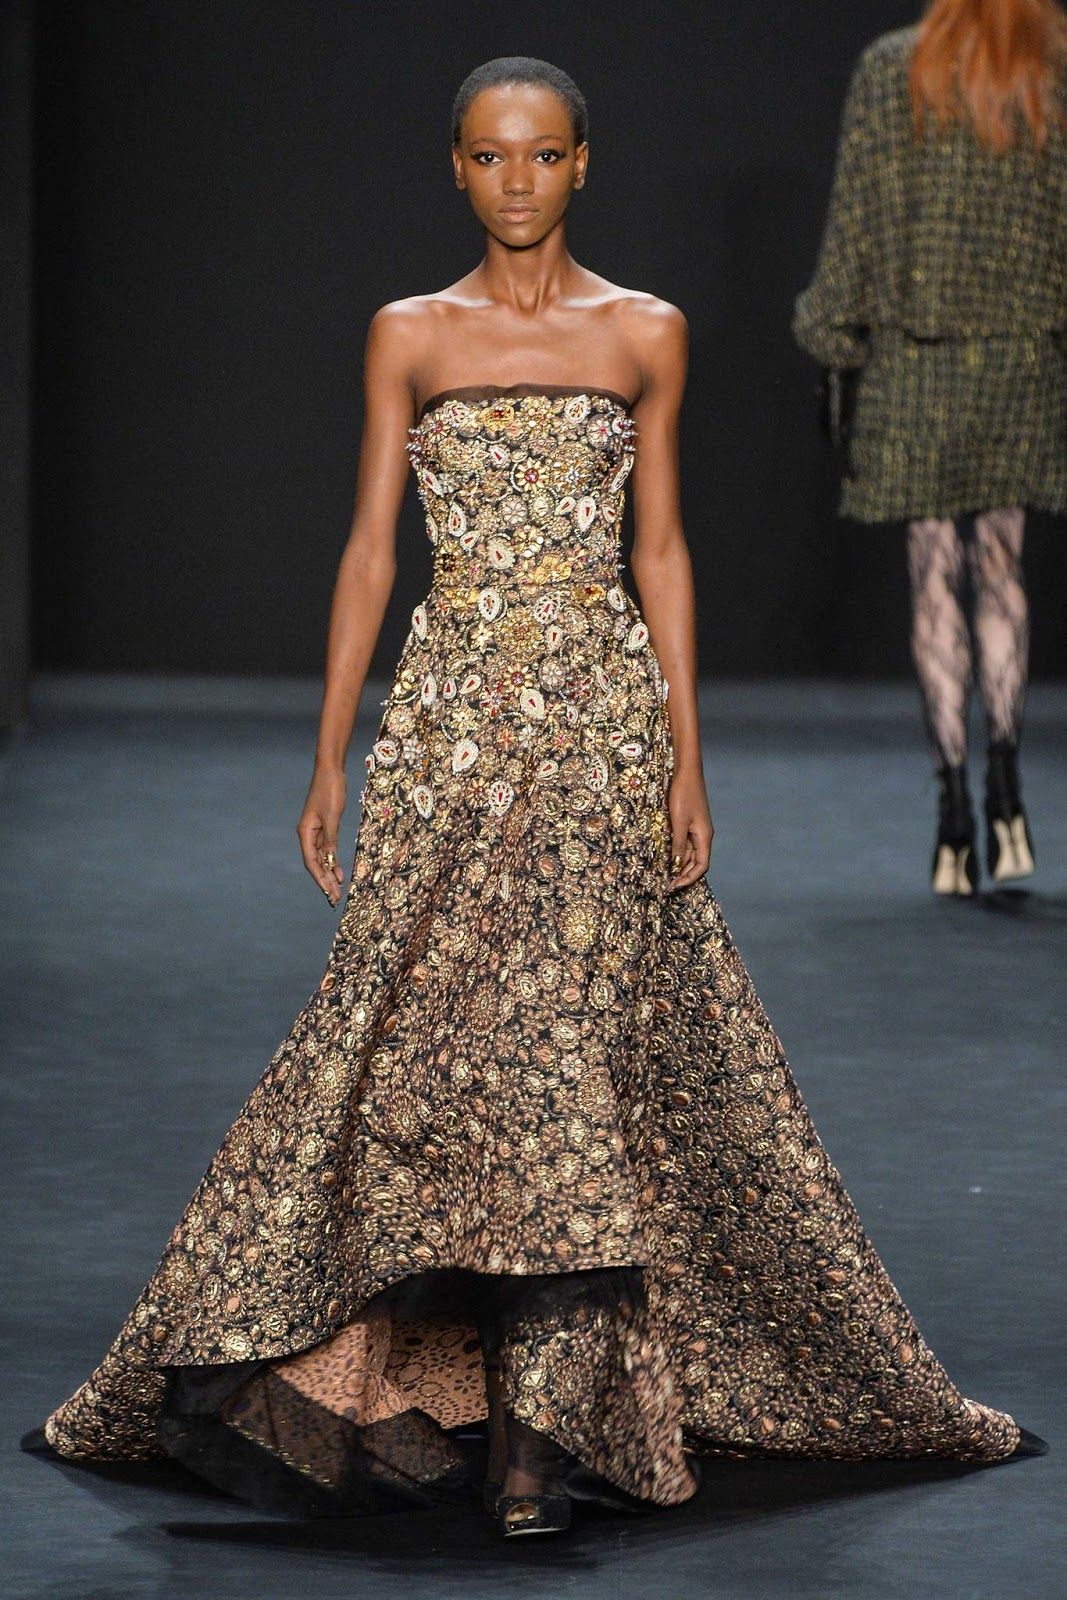 Brocade trend on AW 2015 runway at Badgely Mischka / via www.fashionedbylove.co.uk